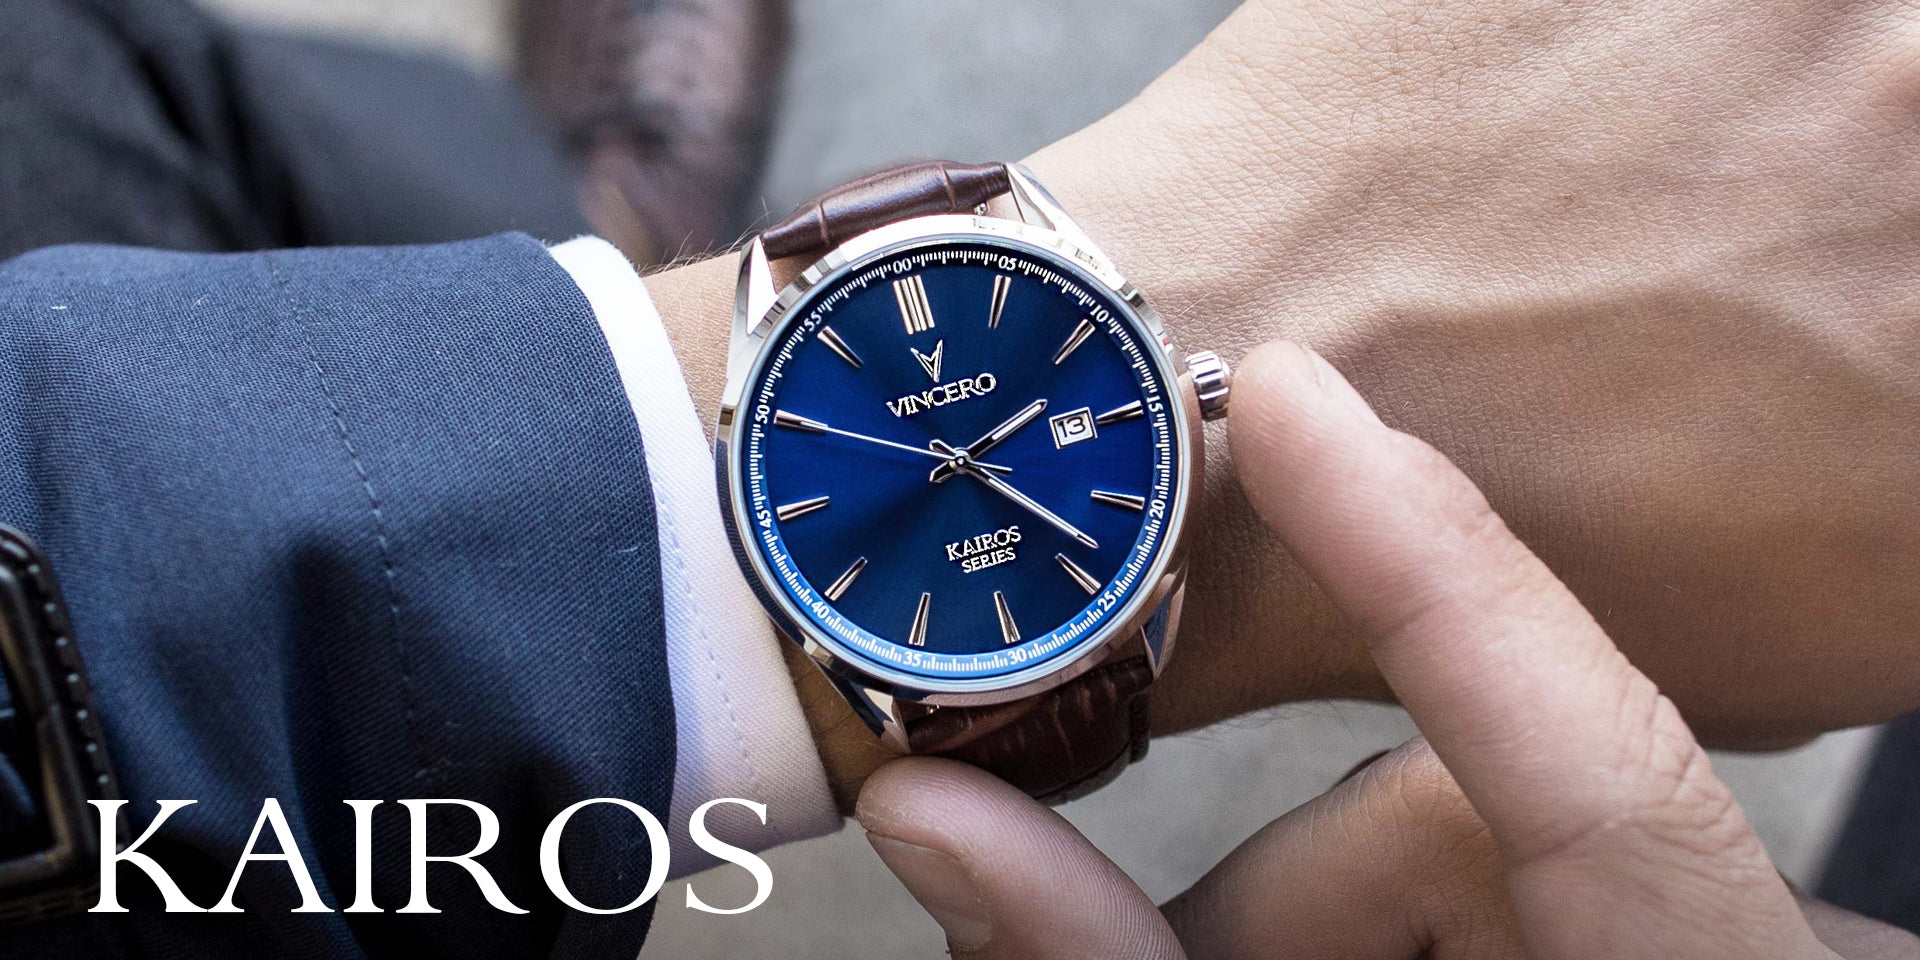 Kairos Dress Watch